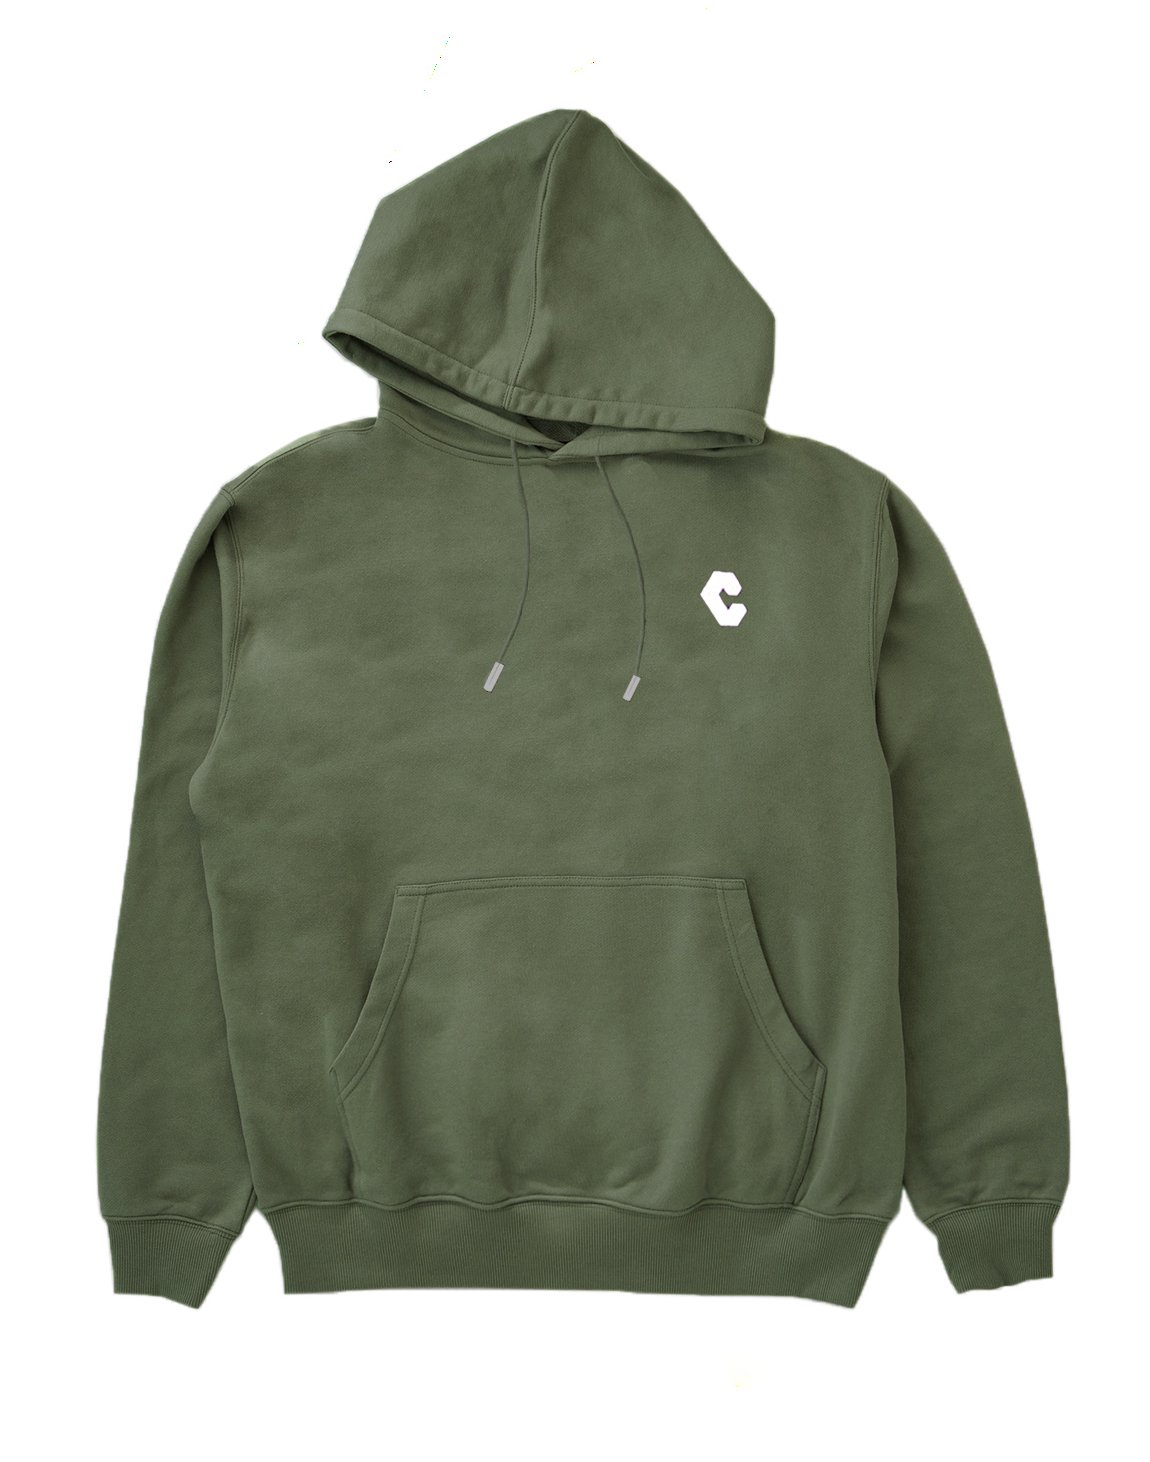 <img class='new_mark_img1' src='https://img.shop-pro.jp/img/new/icons55.gif' style='border:none;display:inline;margin:0px;padding:0px;width:auto;' />CRNS  BACK BIG LOGO HOODY【OLIVE&KHAKI】